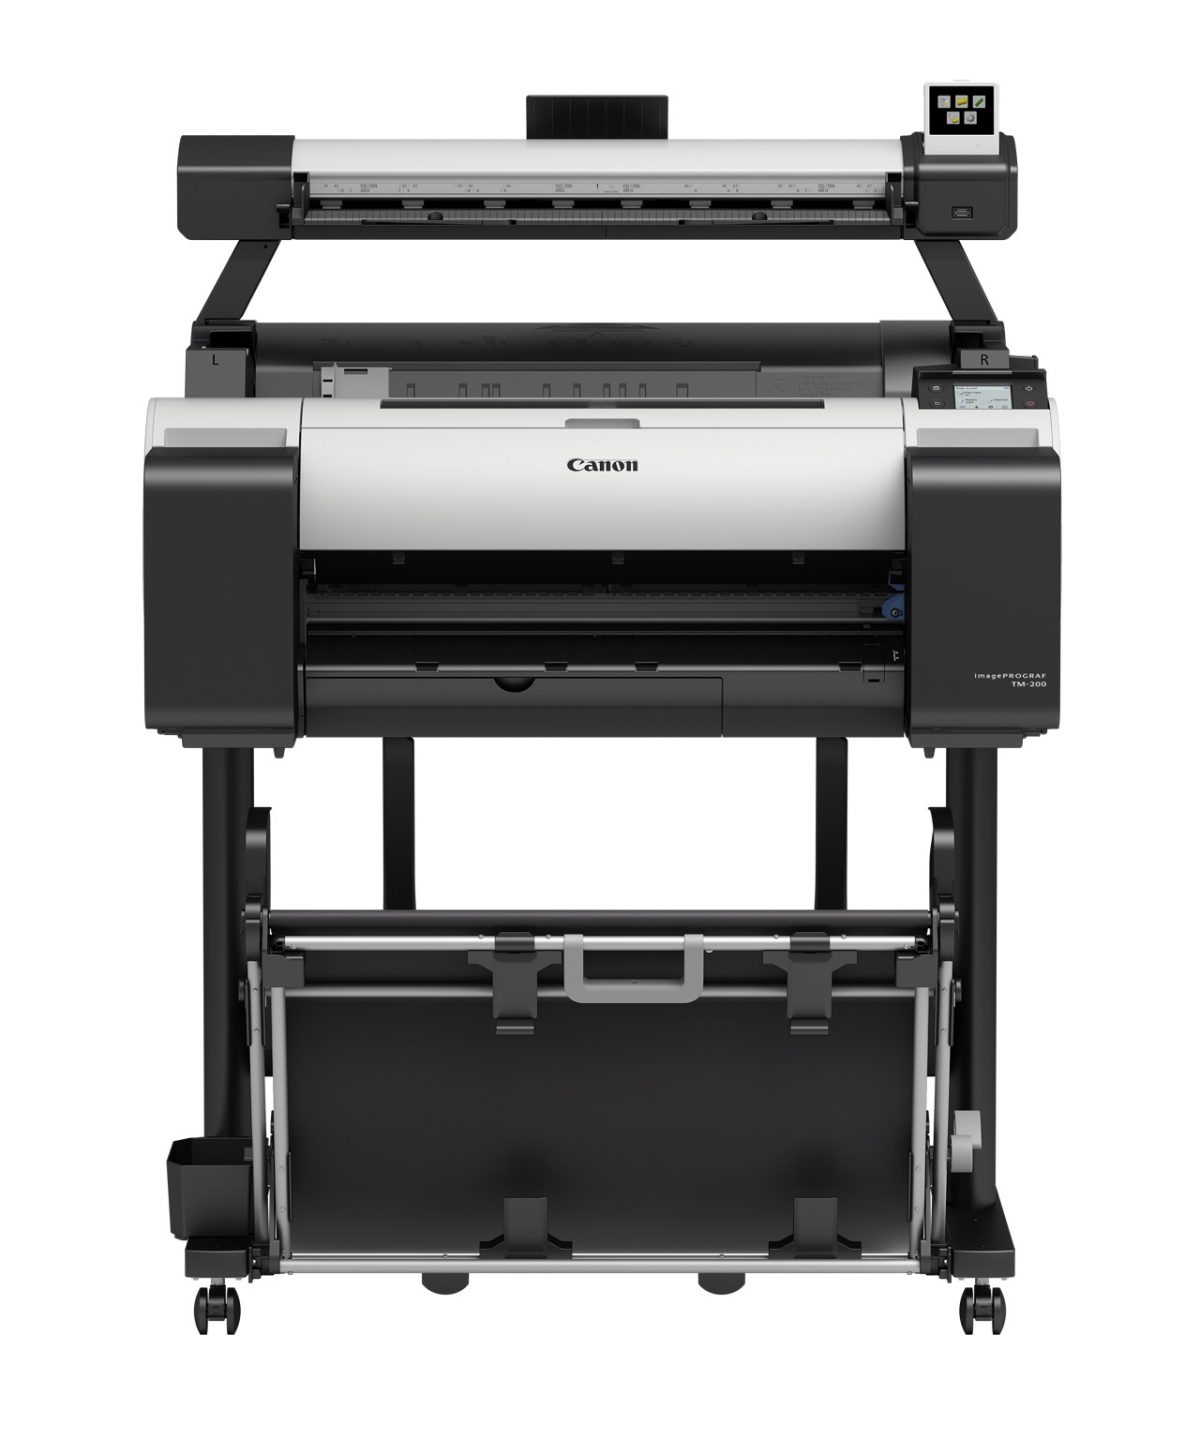 Canon imagePROGRAF TM-200 MFP L24ei (610mm/24in) A1 Scan and Print